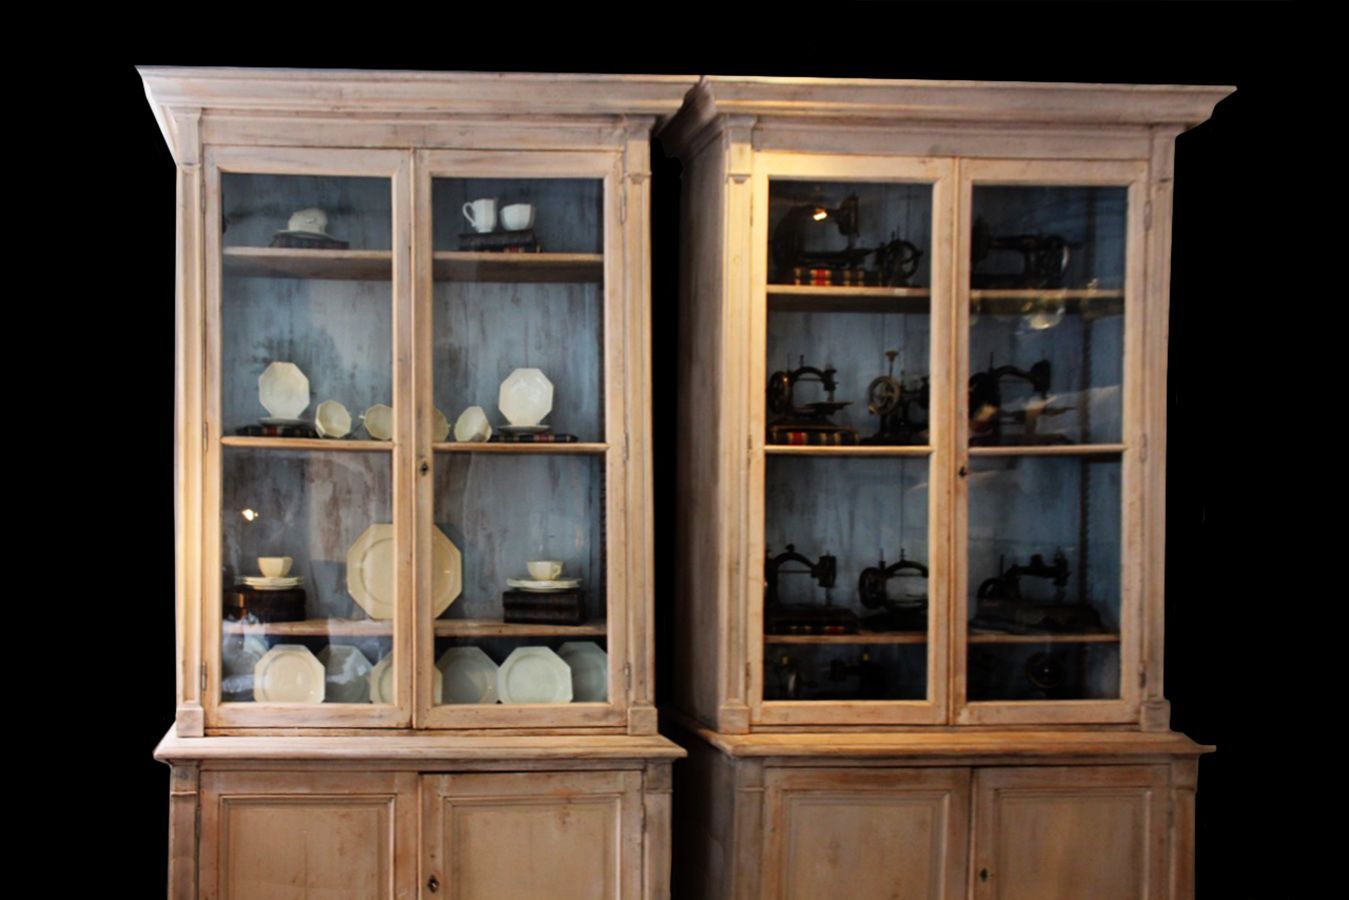 Antique French Pharmacy Cabinets, Set of 2 for sale at Pamono